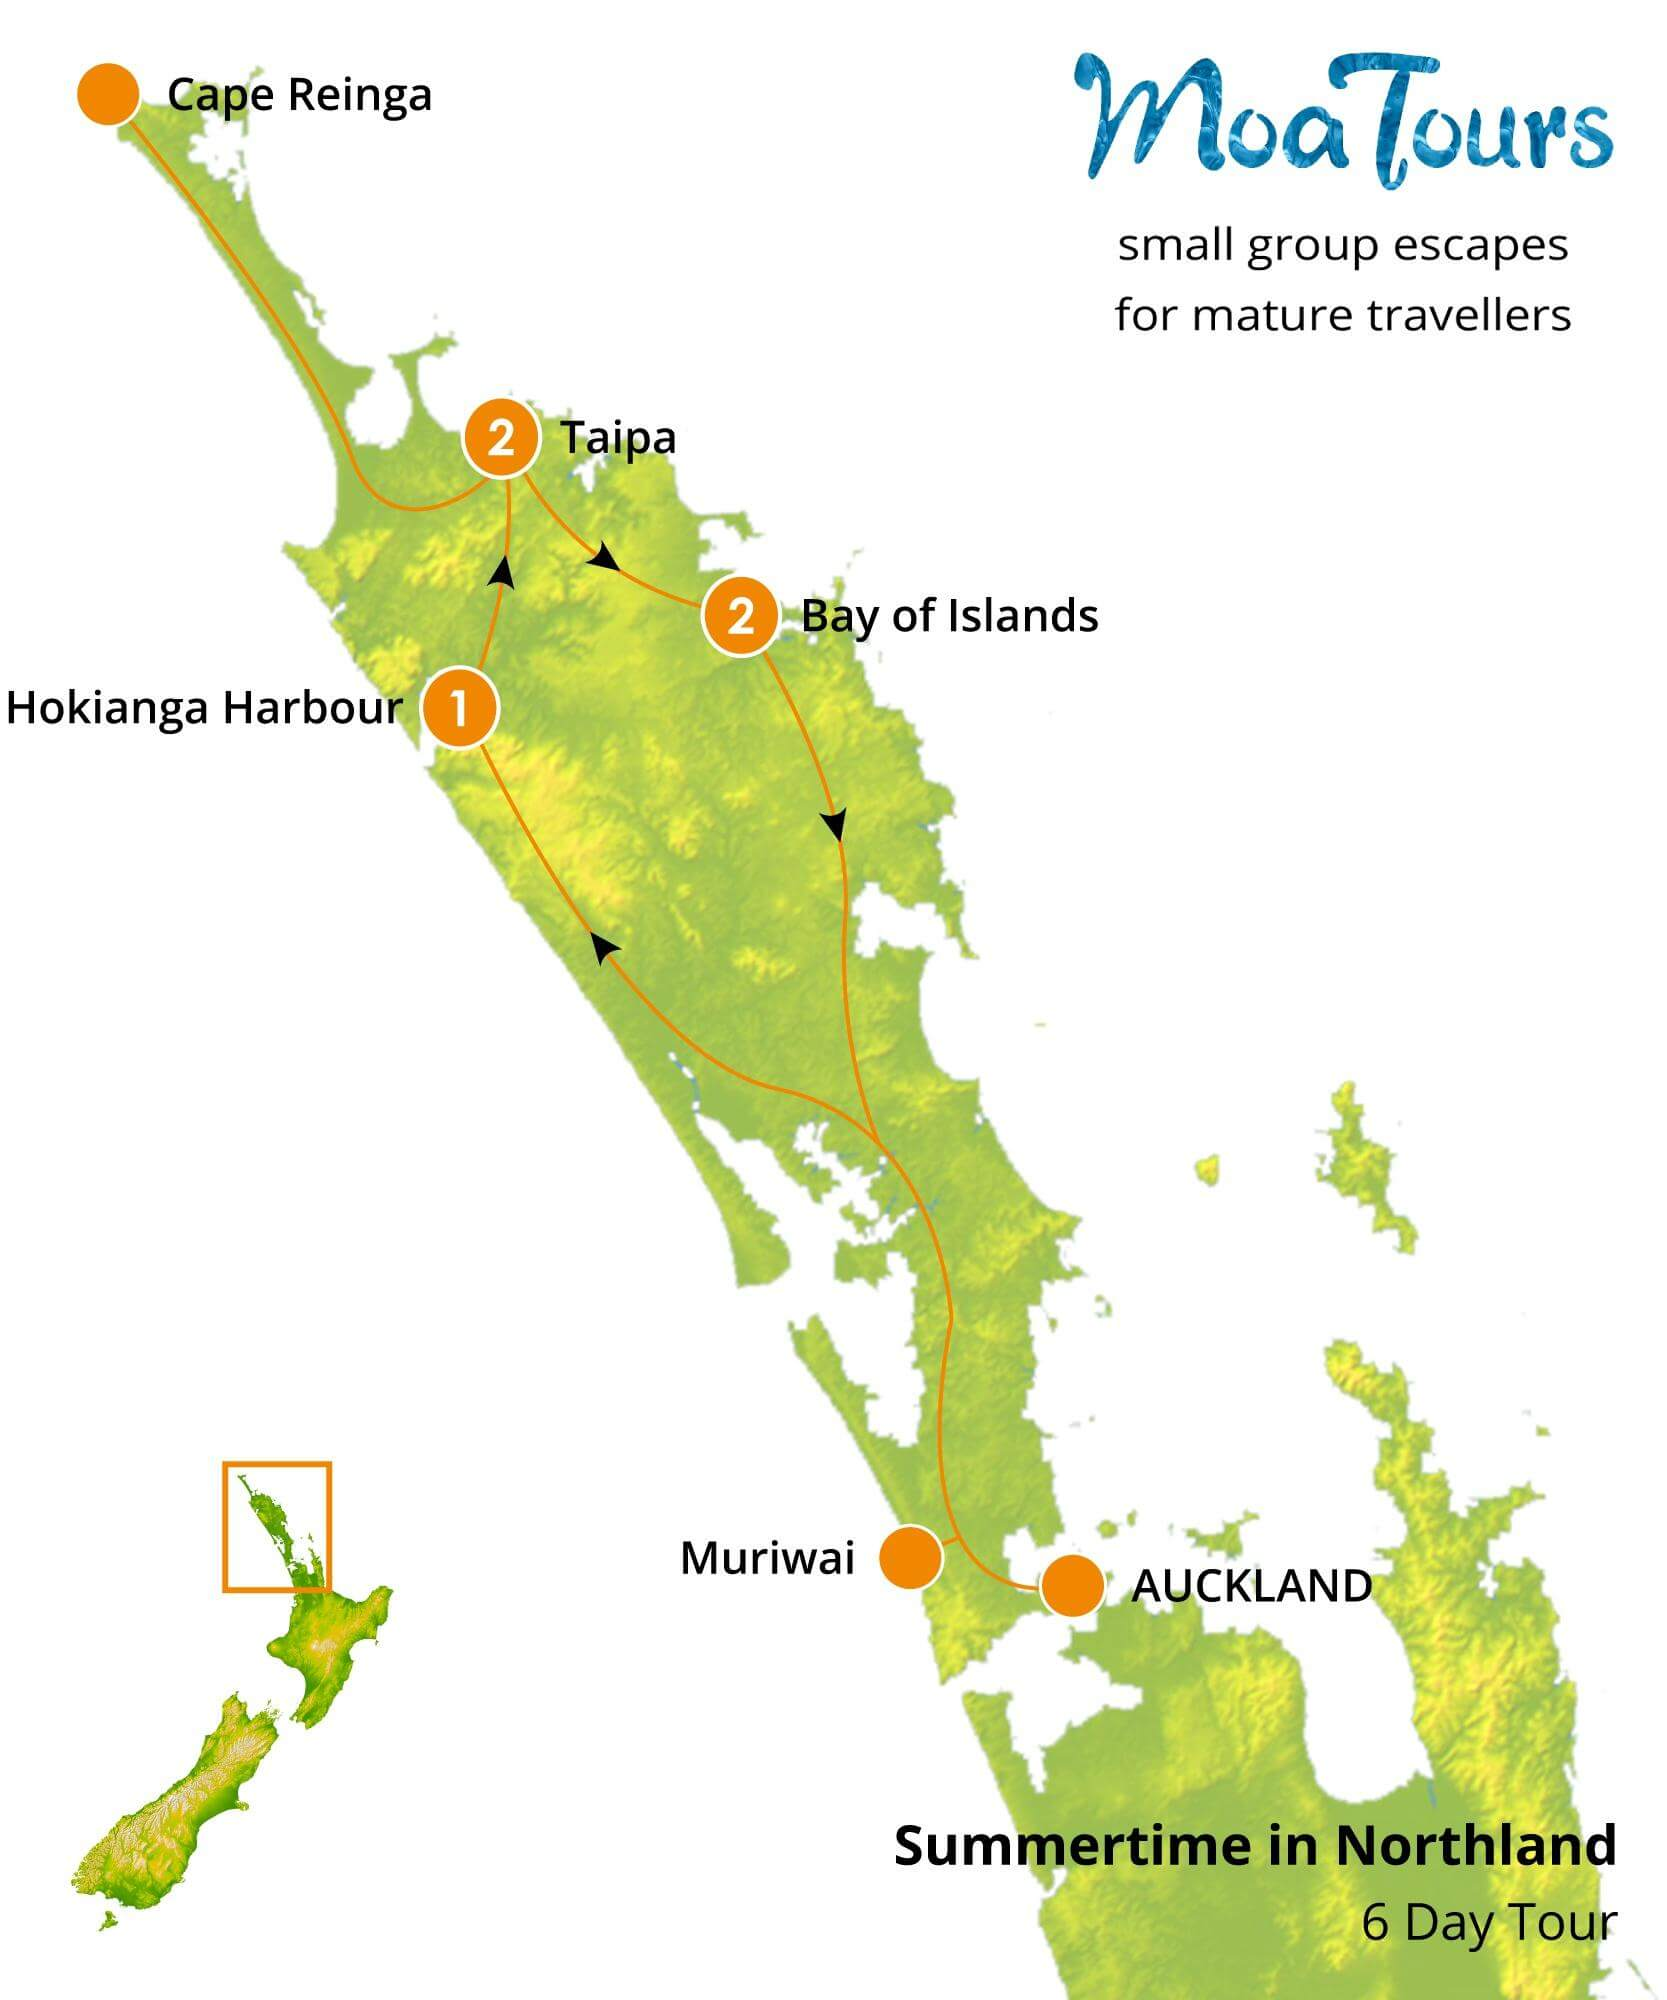 New Zealand Northland Map Detailed.Summertime In Northland 6 Day Tour Moatours New Zealand